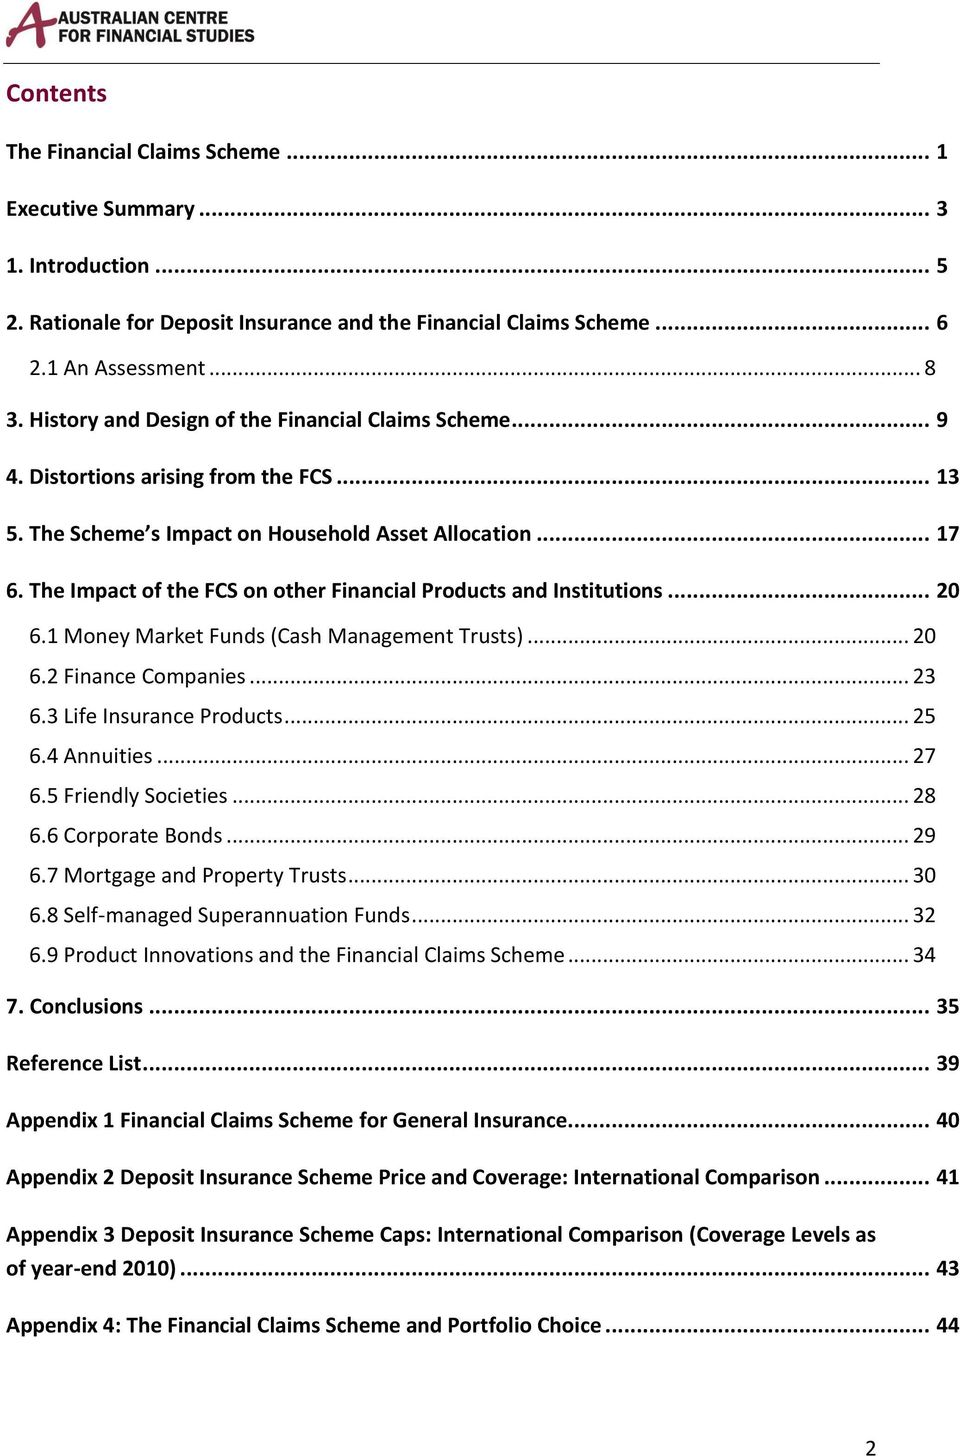 The Impact of the FCS on other Financial Products and Institutions... 20 6.1 Money Market Funds (Cash Management Trusts)... 20 6.2 Finance Companies... 23 6.3 Life Insurance Products... 25 6.